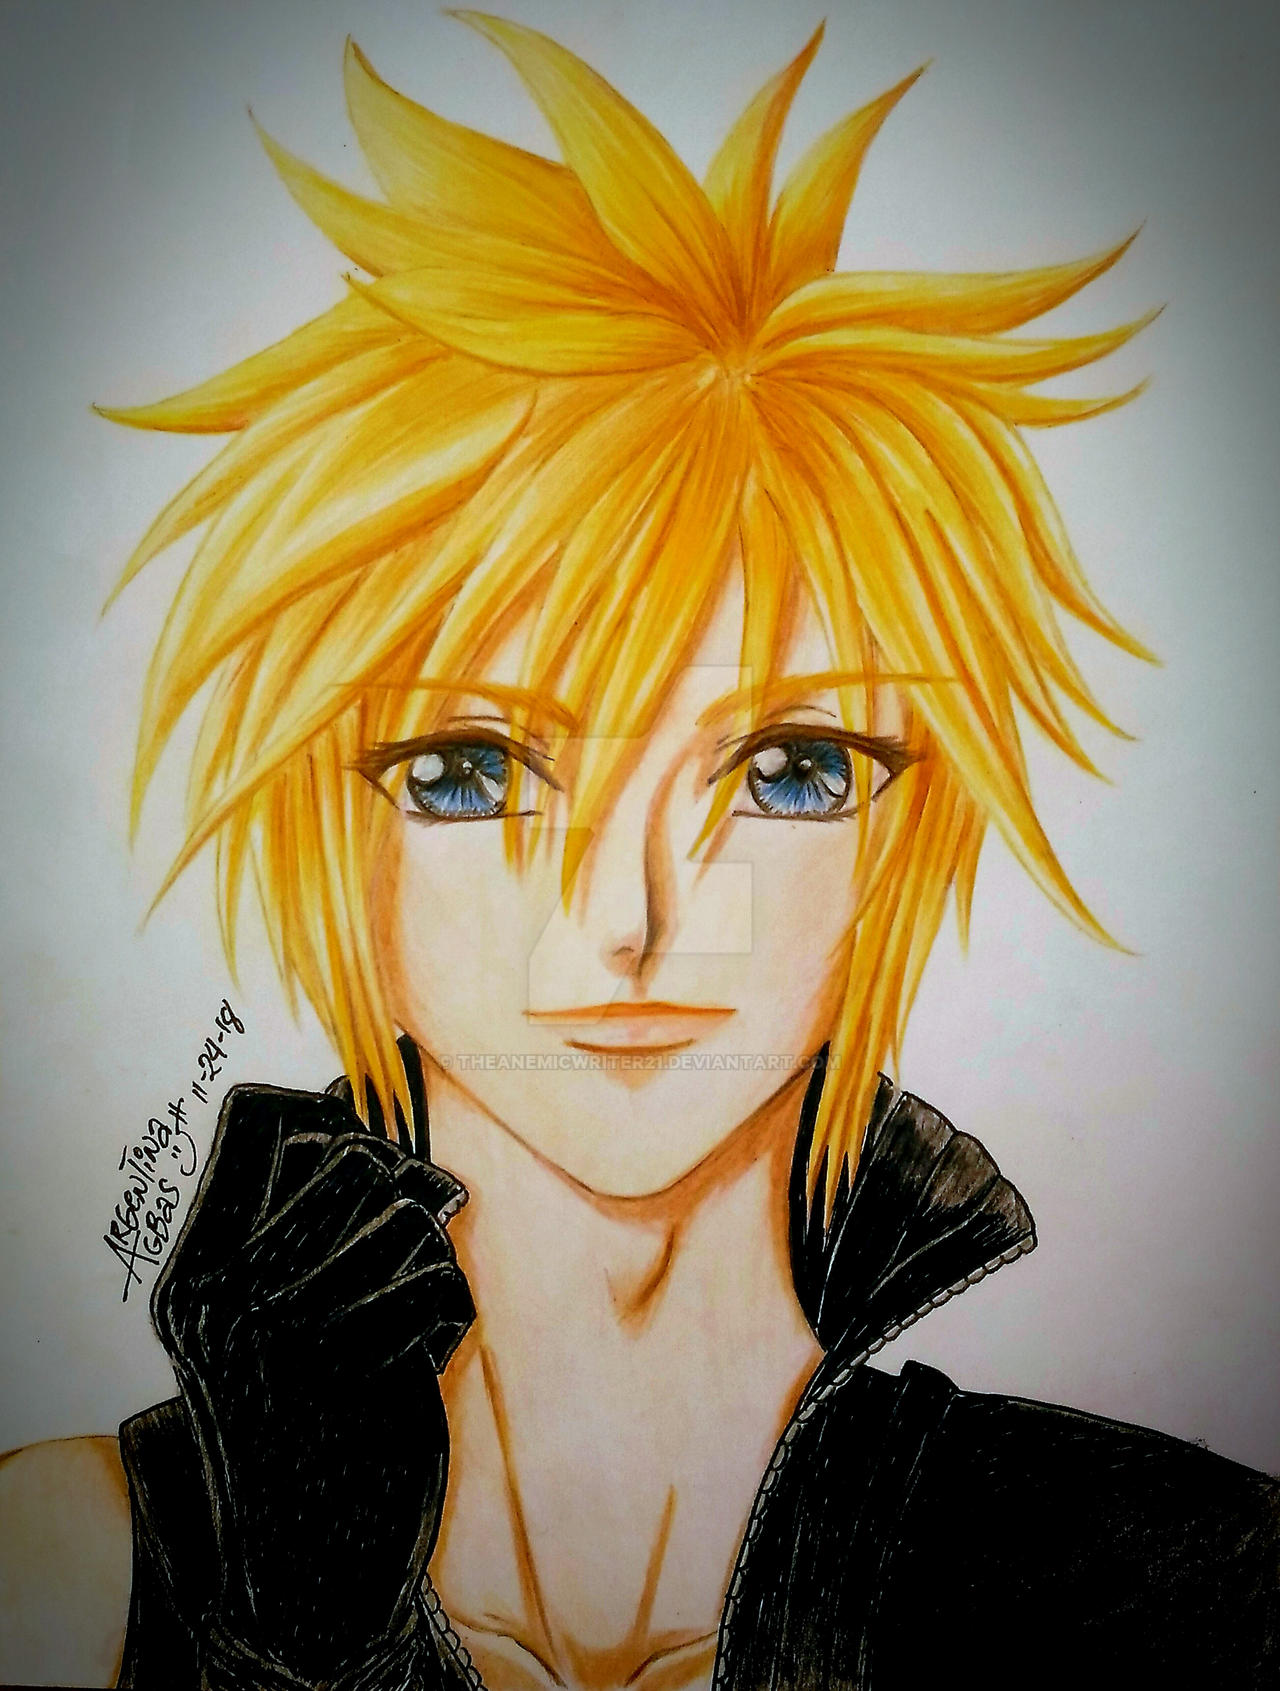 Cloud strife fanart by theanemicwriter21 on deviantart - Cloud strife fanart ...